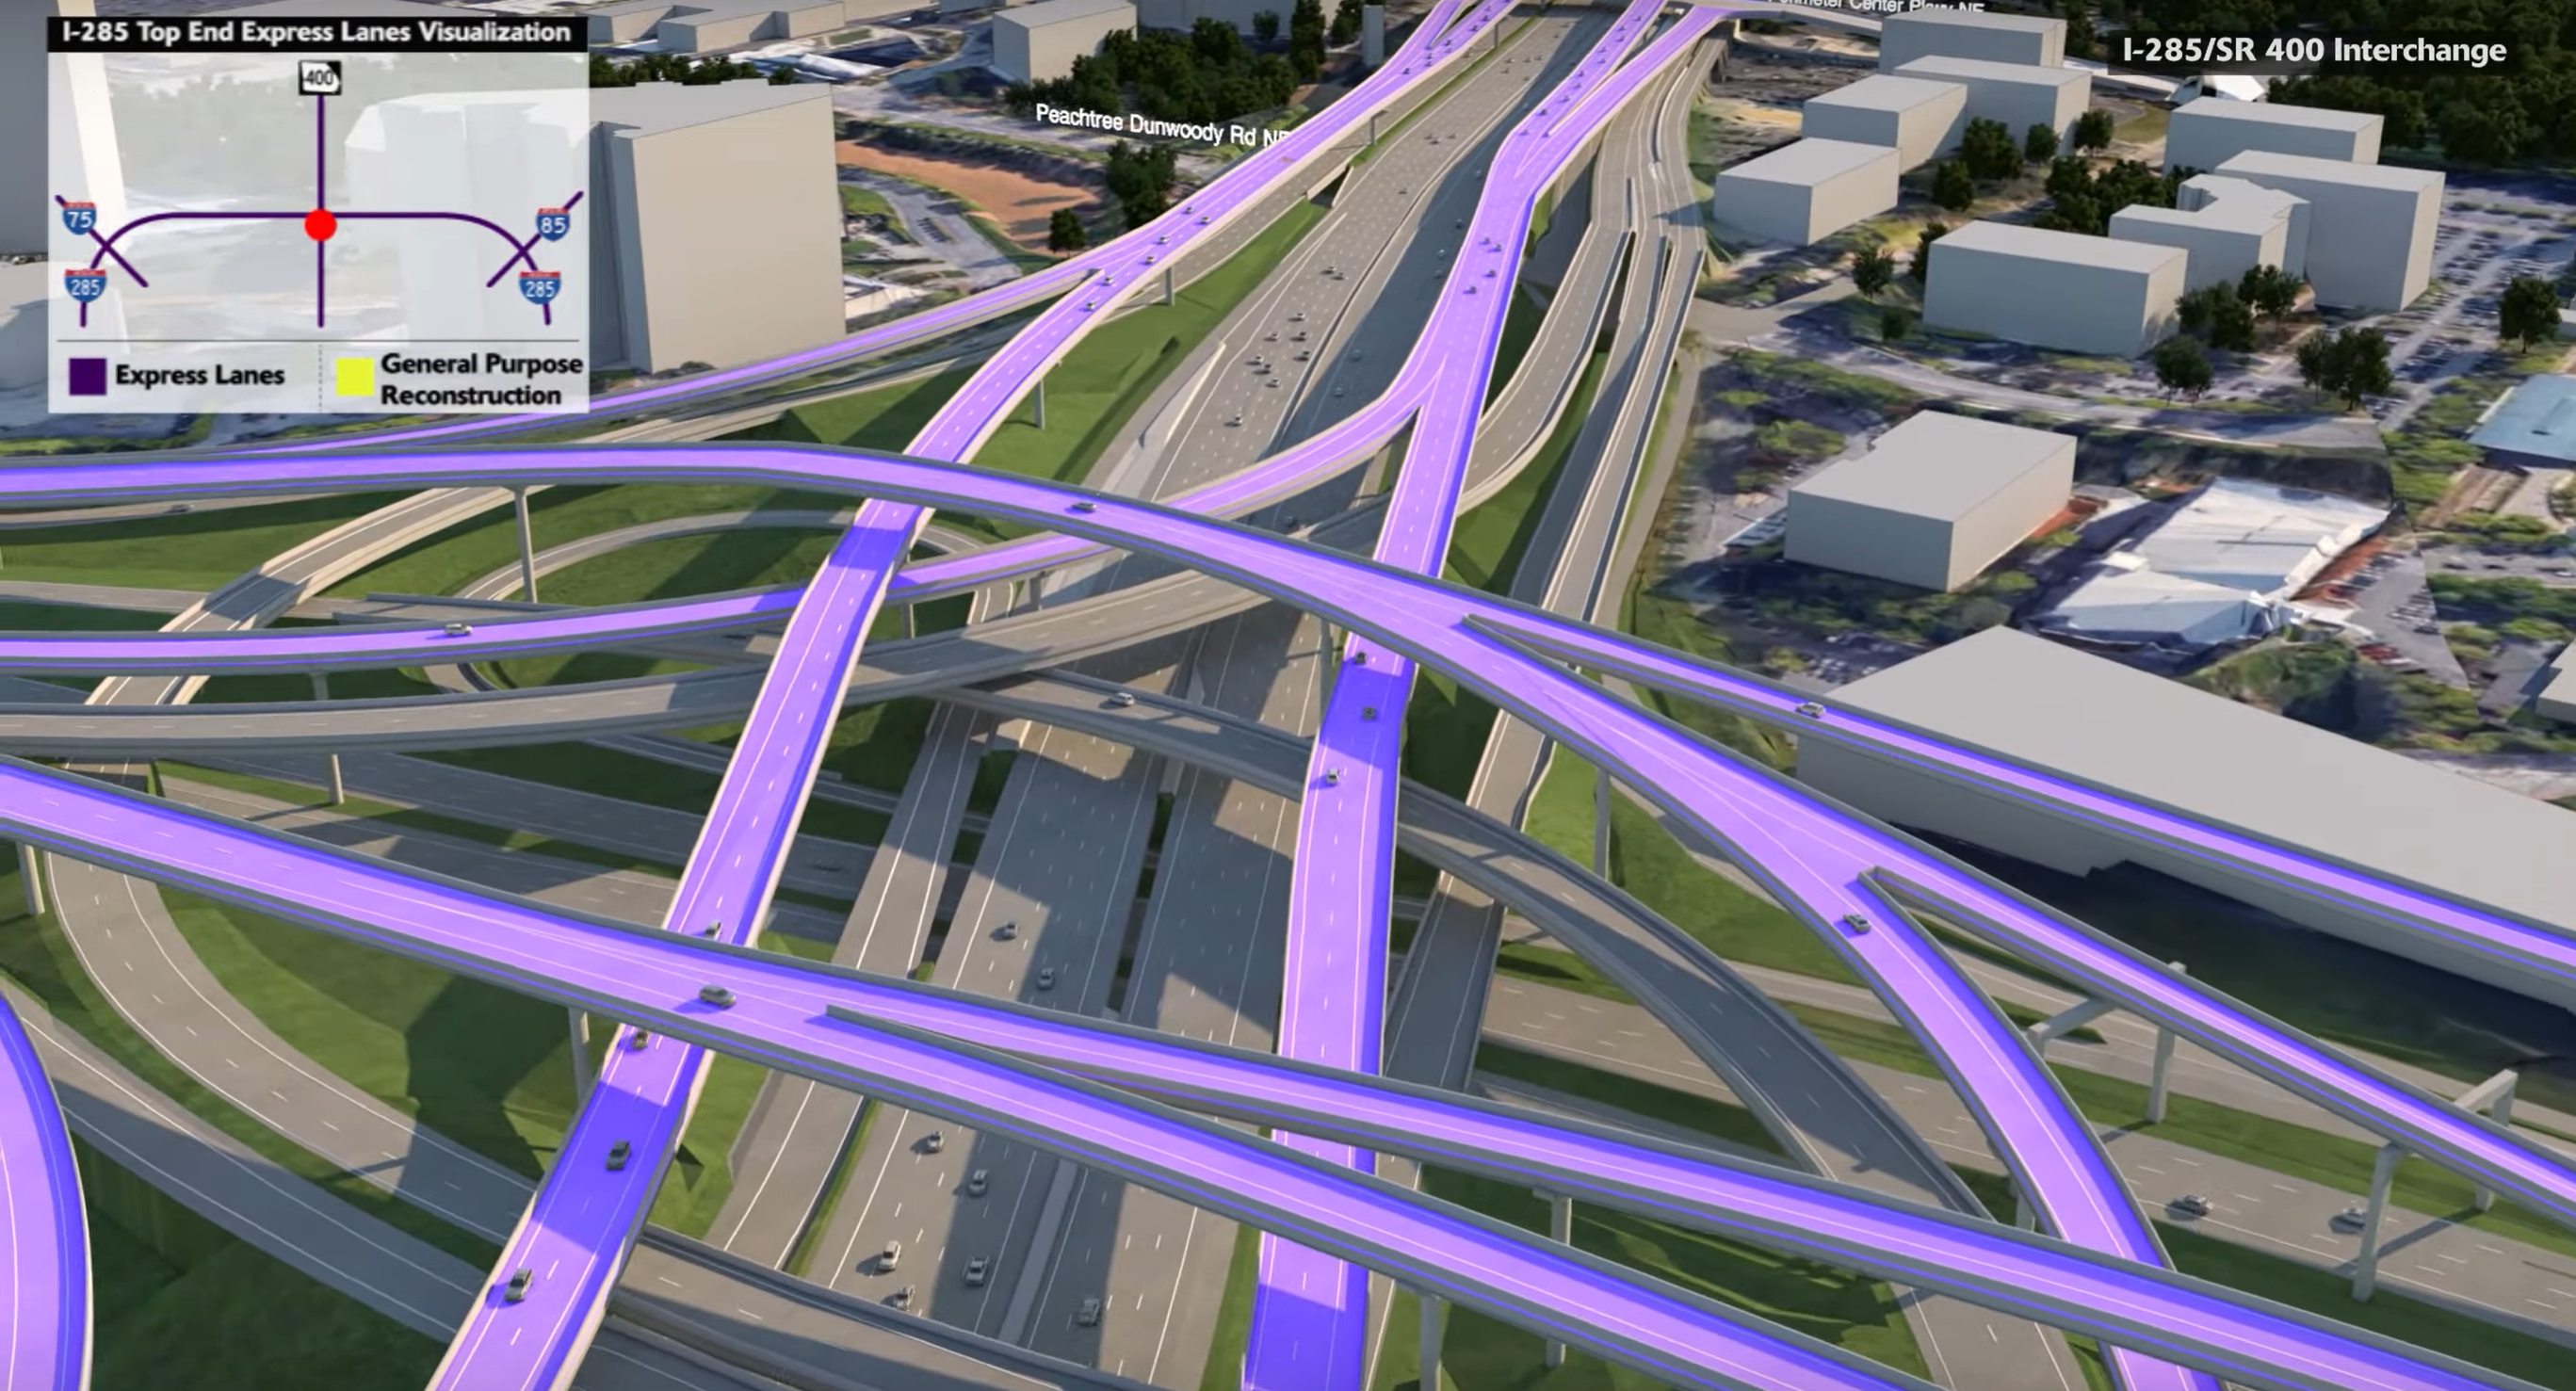 A rendering shows in purple the new express lanes weaving through the existing infrastructure.